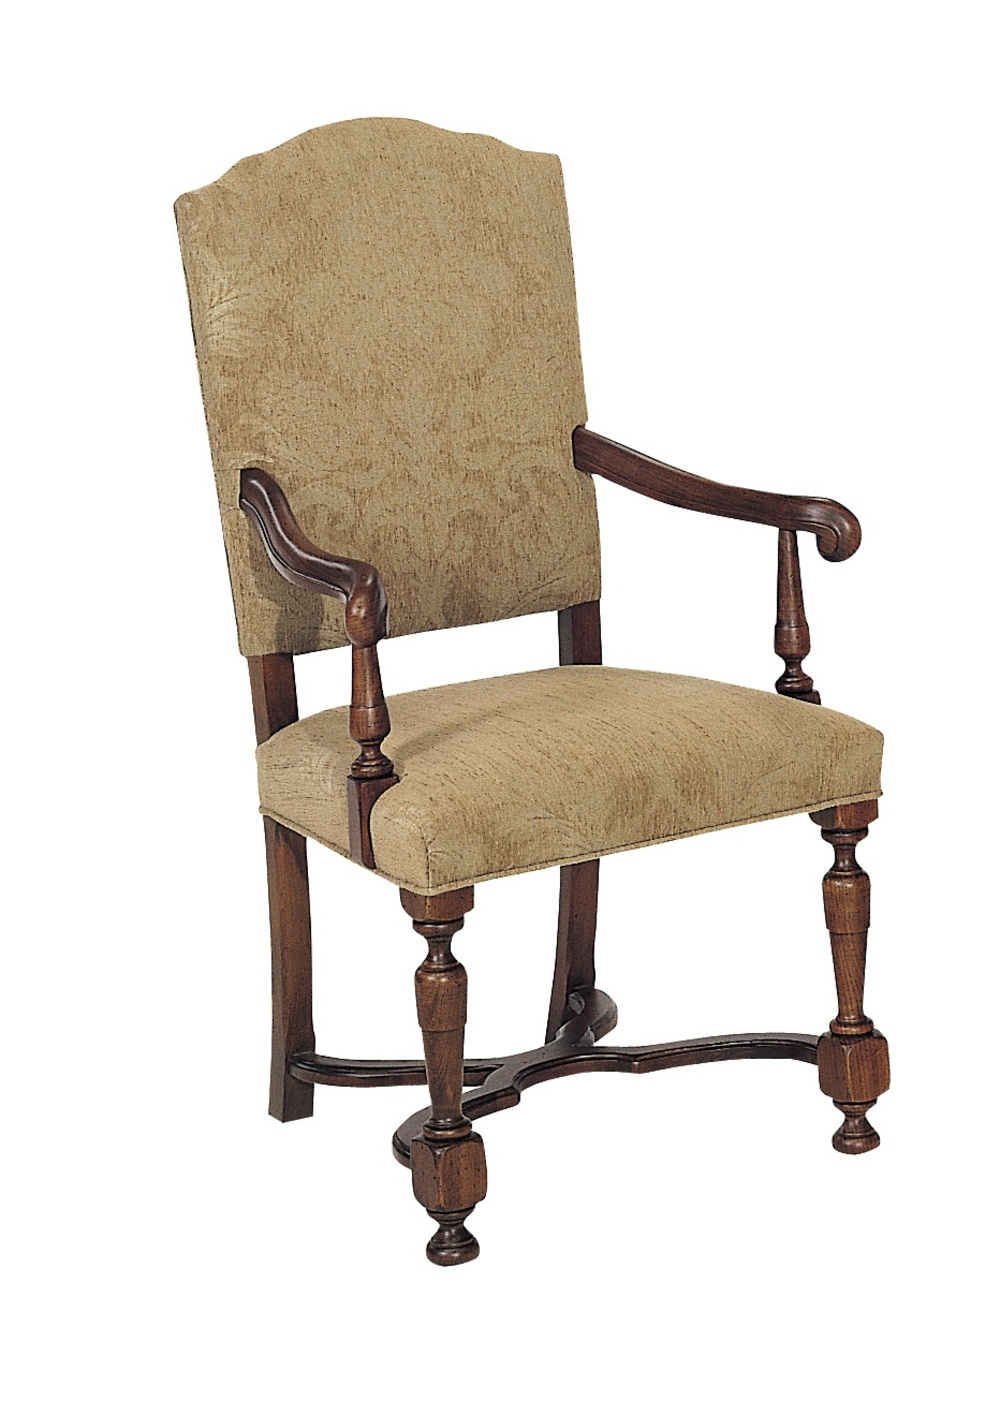 Hickory Chair - Palermo Arm Chair